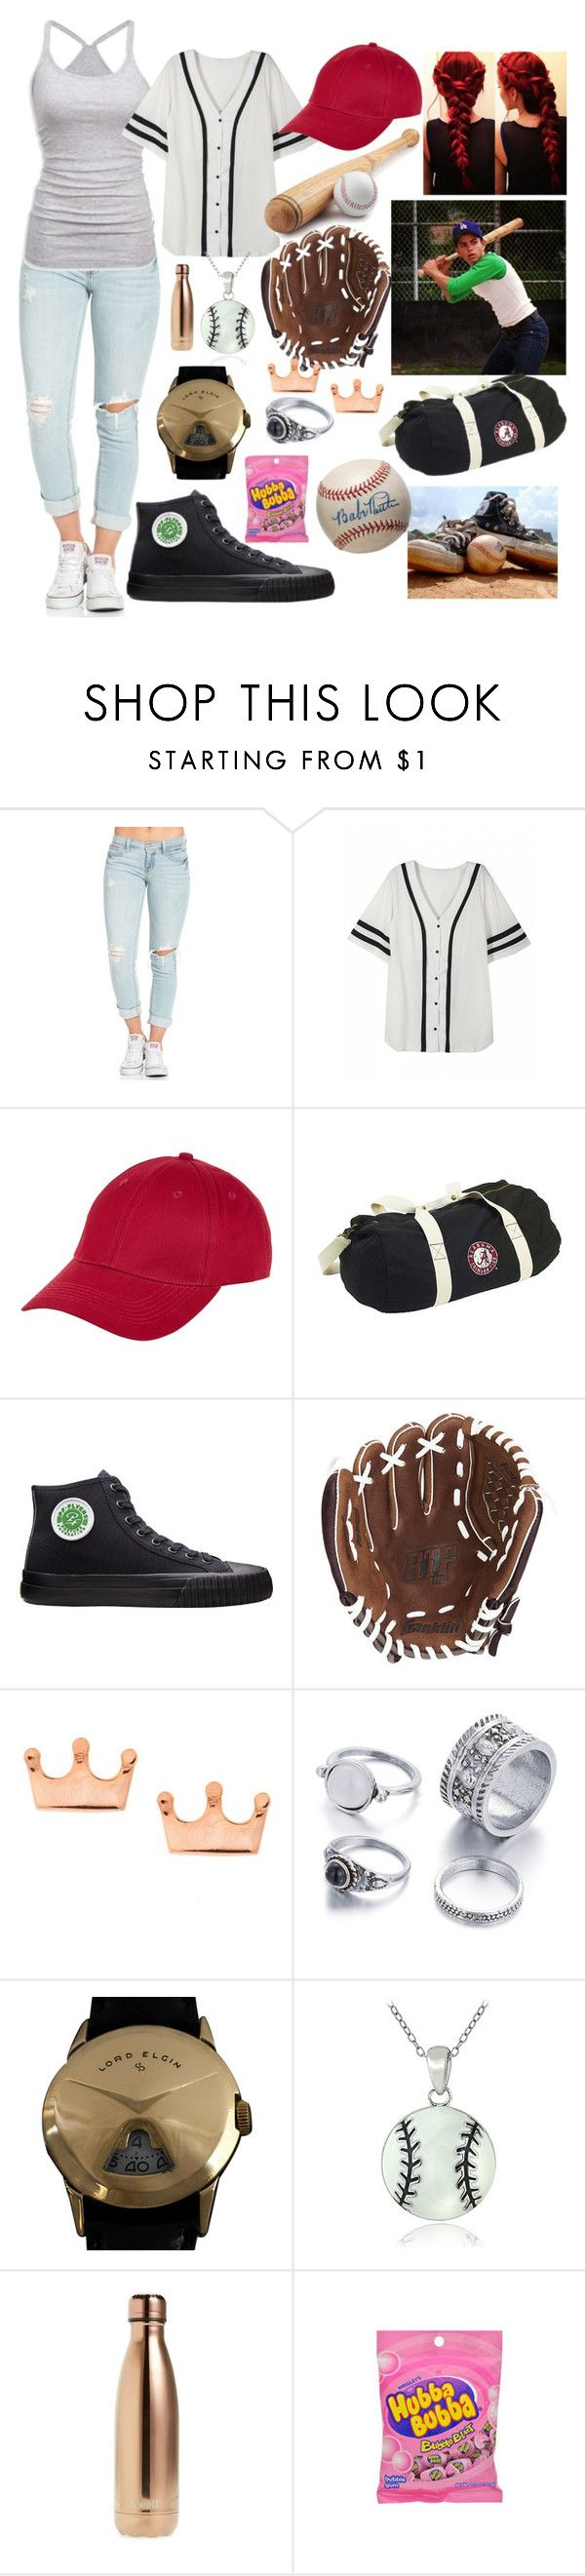 """""""meeting benny rodriguez (sandlot)"""" by alaskan-bush-people ❤ liked on Polyvore featuring American Eagle Outfitters, New Look, PF Flyers, Franklin, Elgin, Mondevio and S'well"""